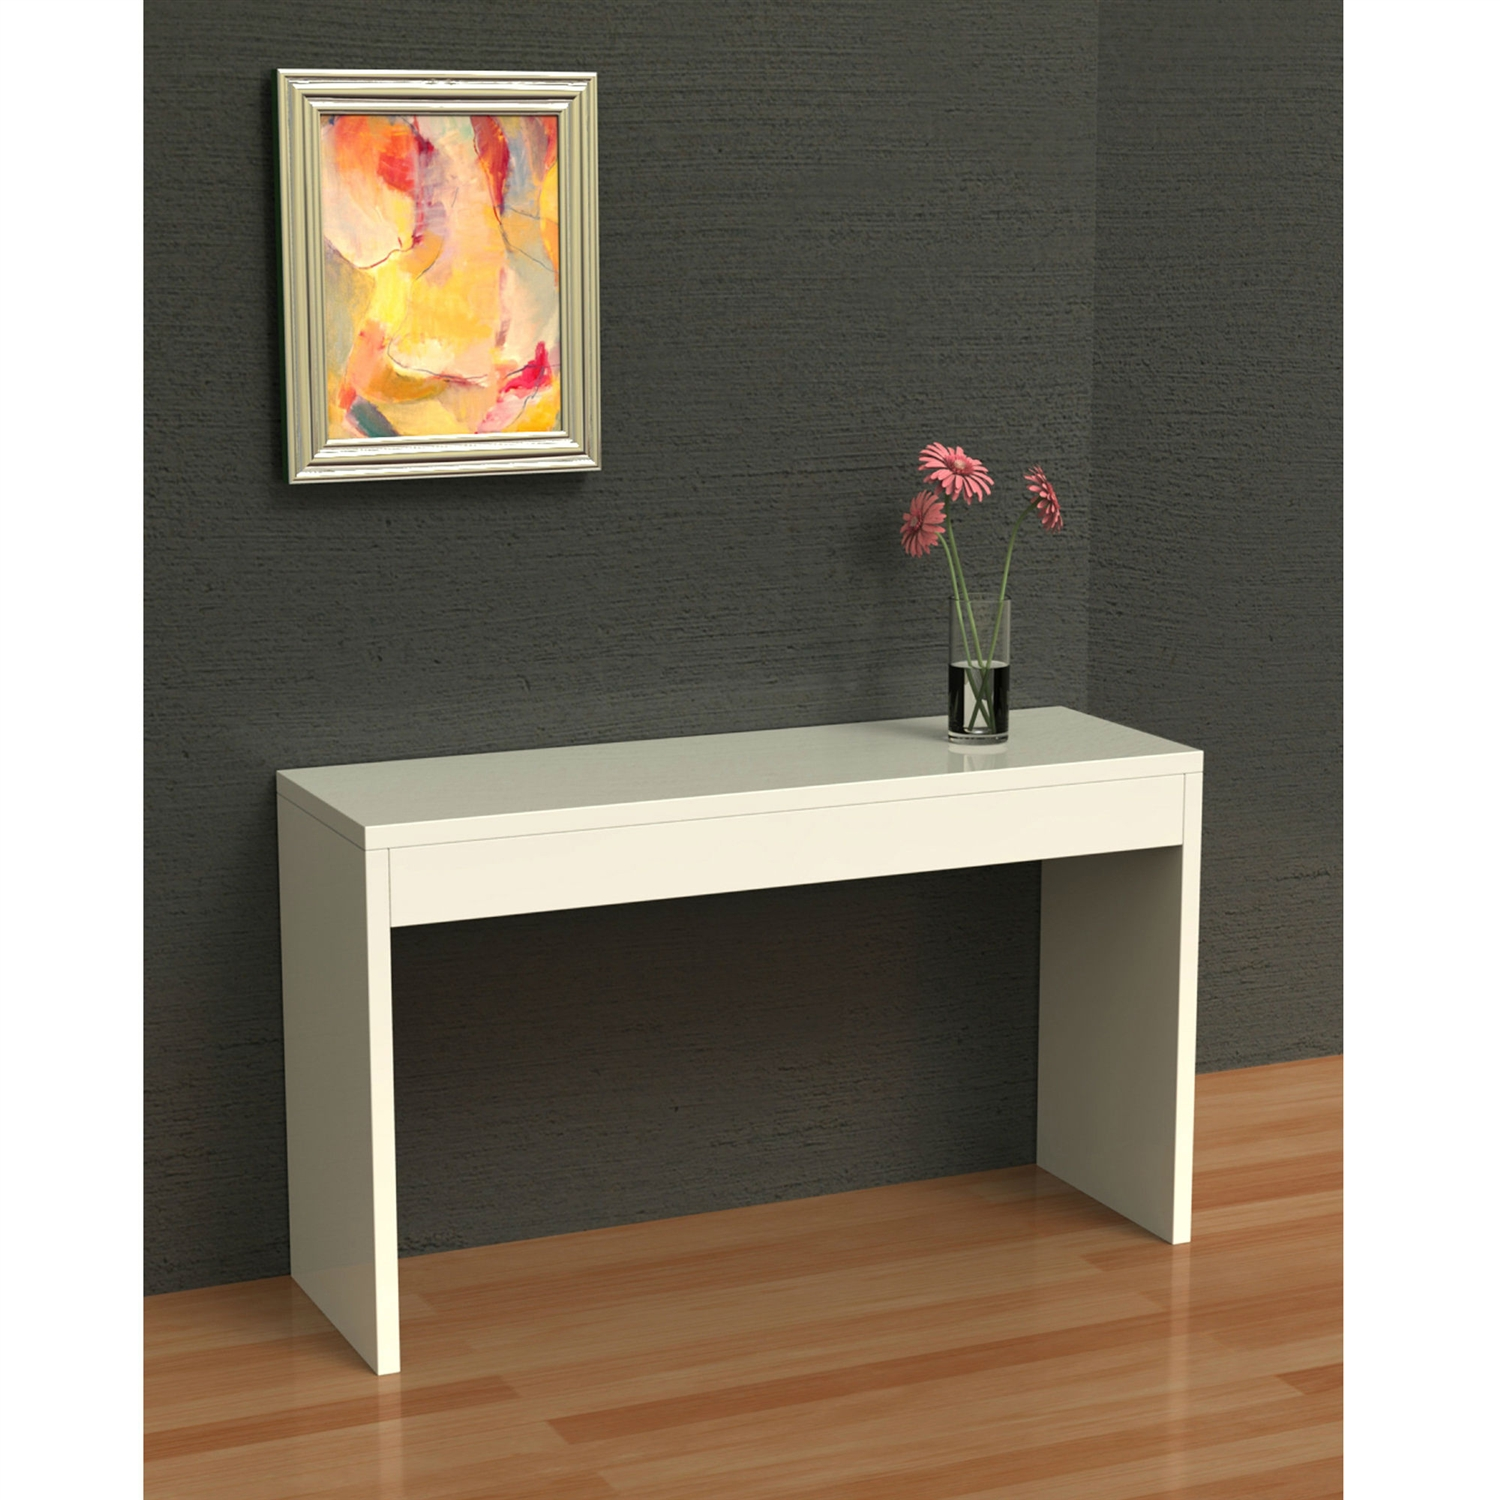 White Sofa Table Modern Entryway Living Room Console Table Fastfurnishings Com